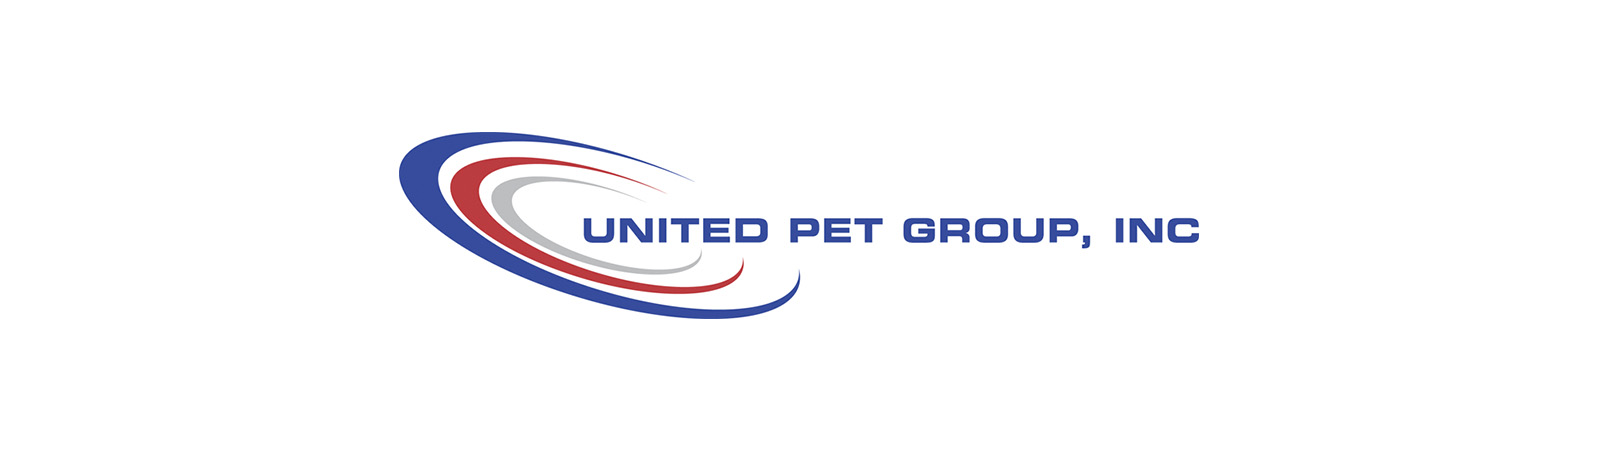 United Pet Group logo image